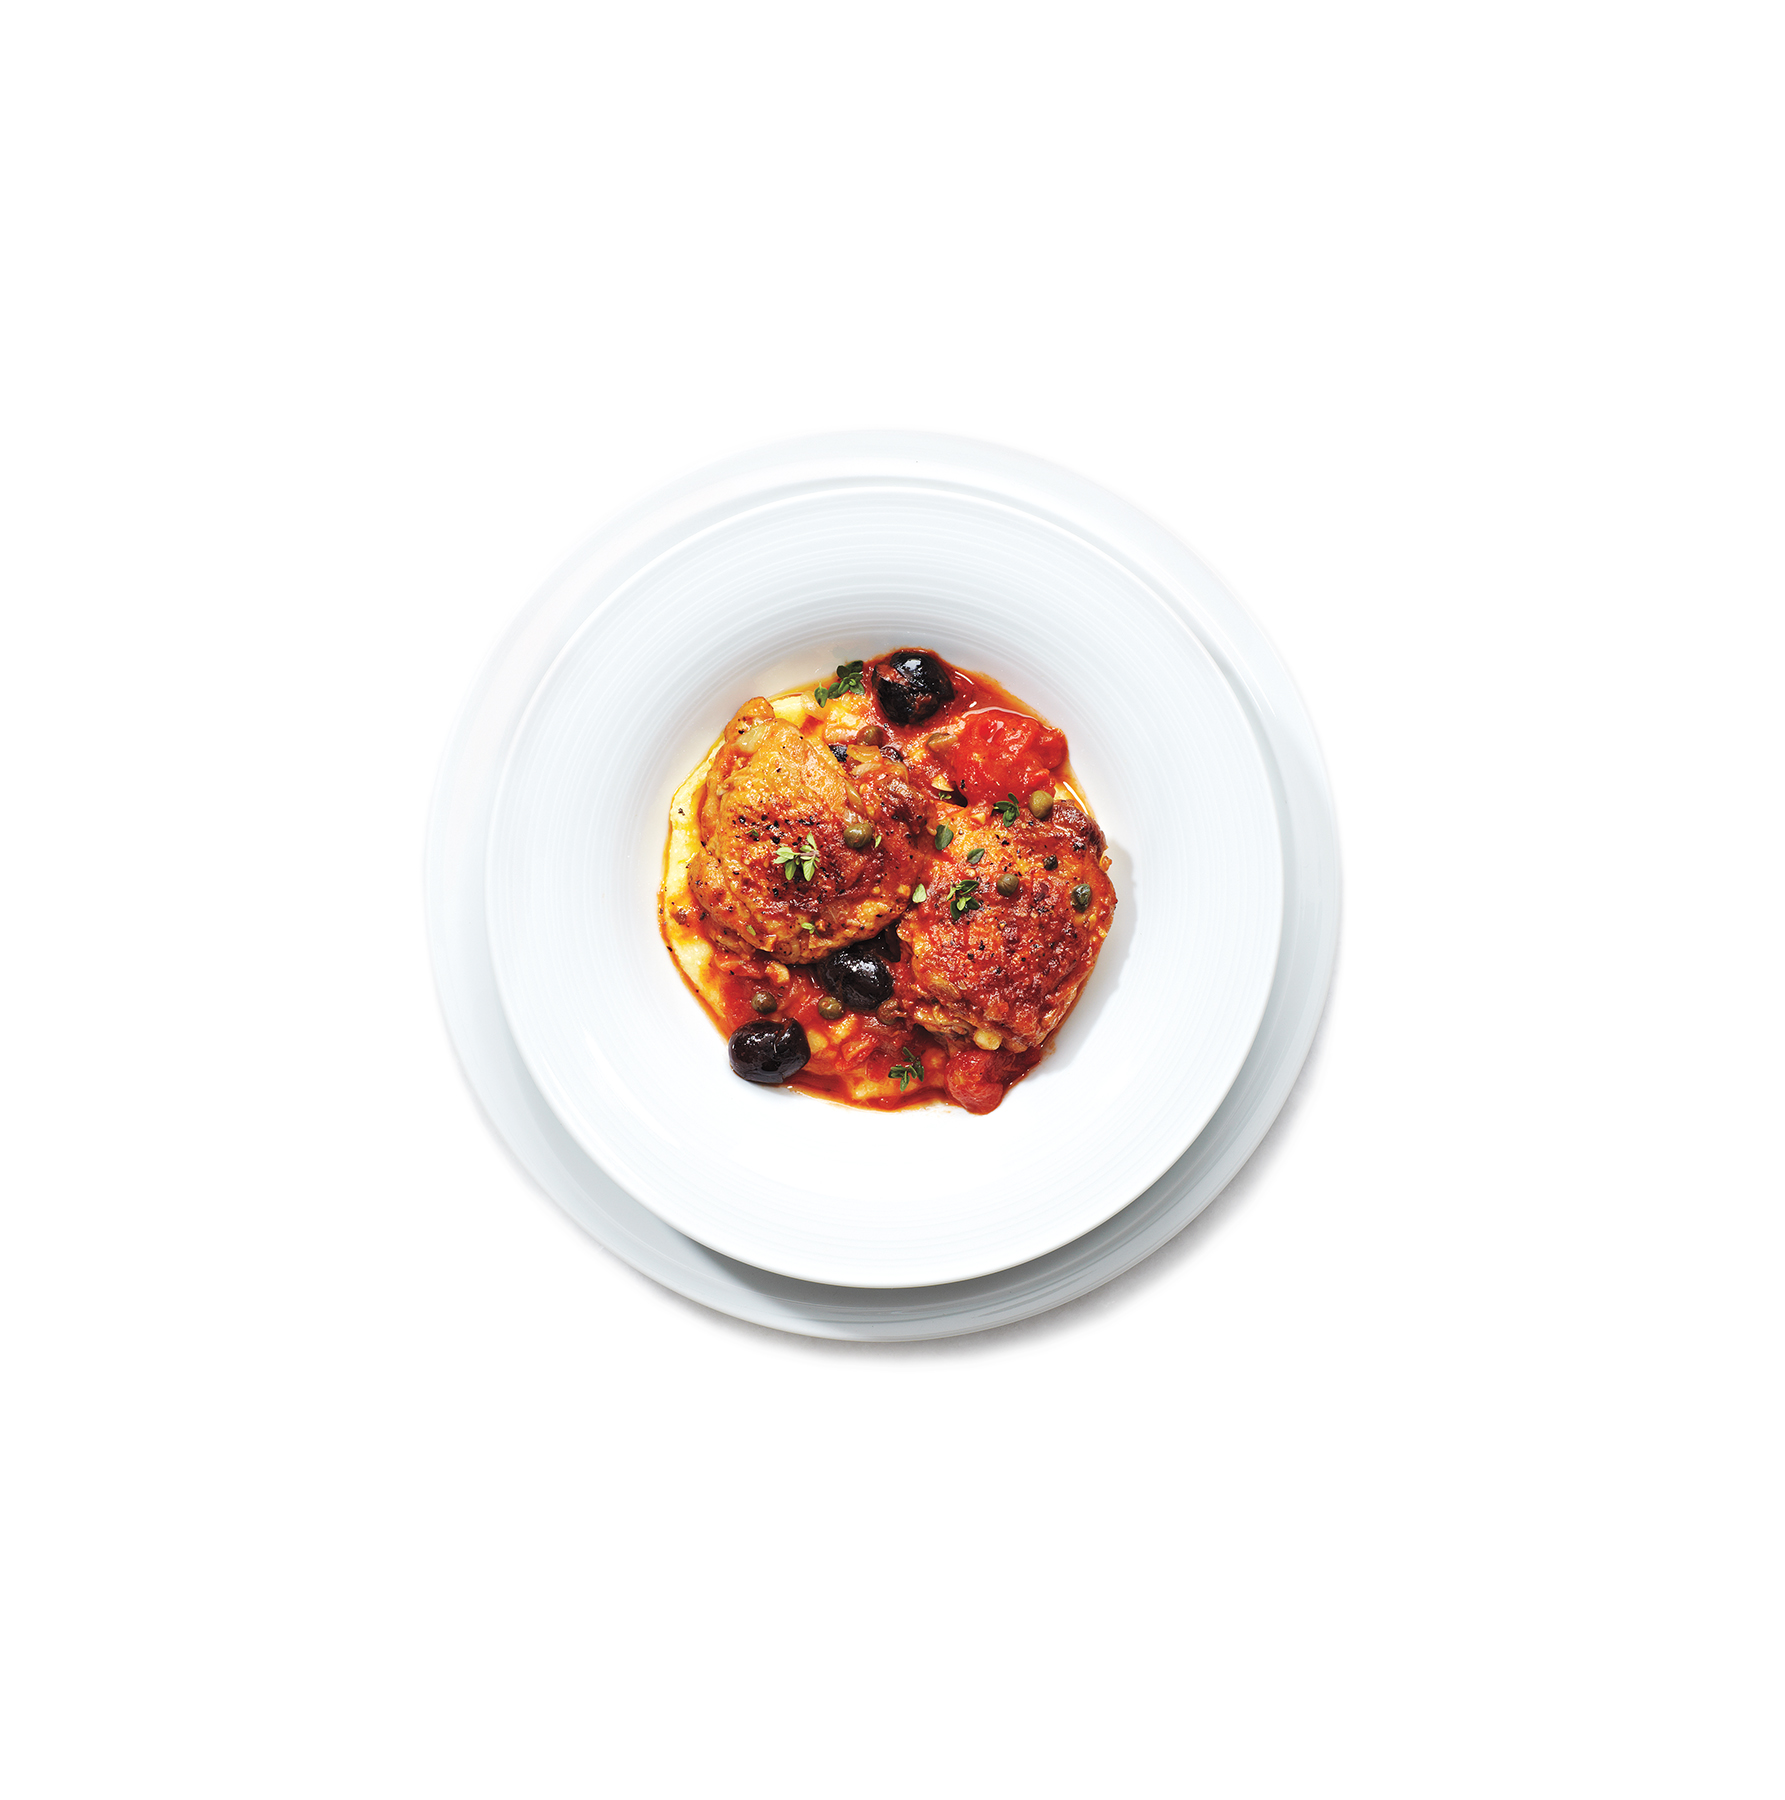 tomato-chicken-olives-polenta